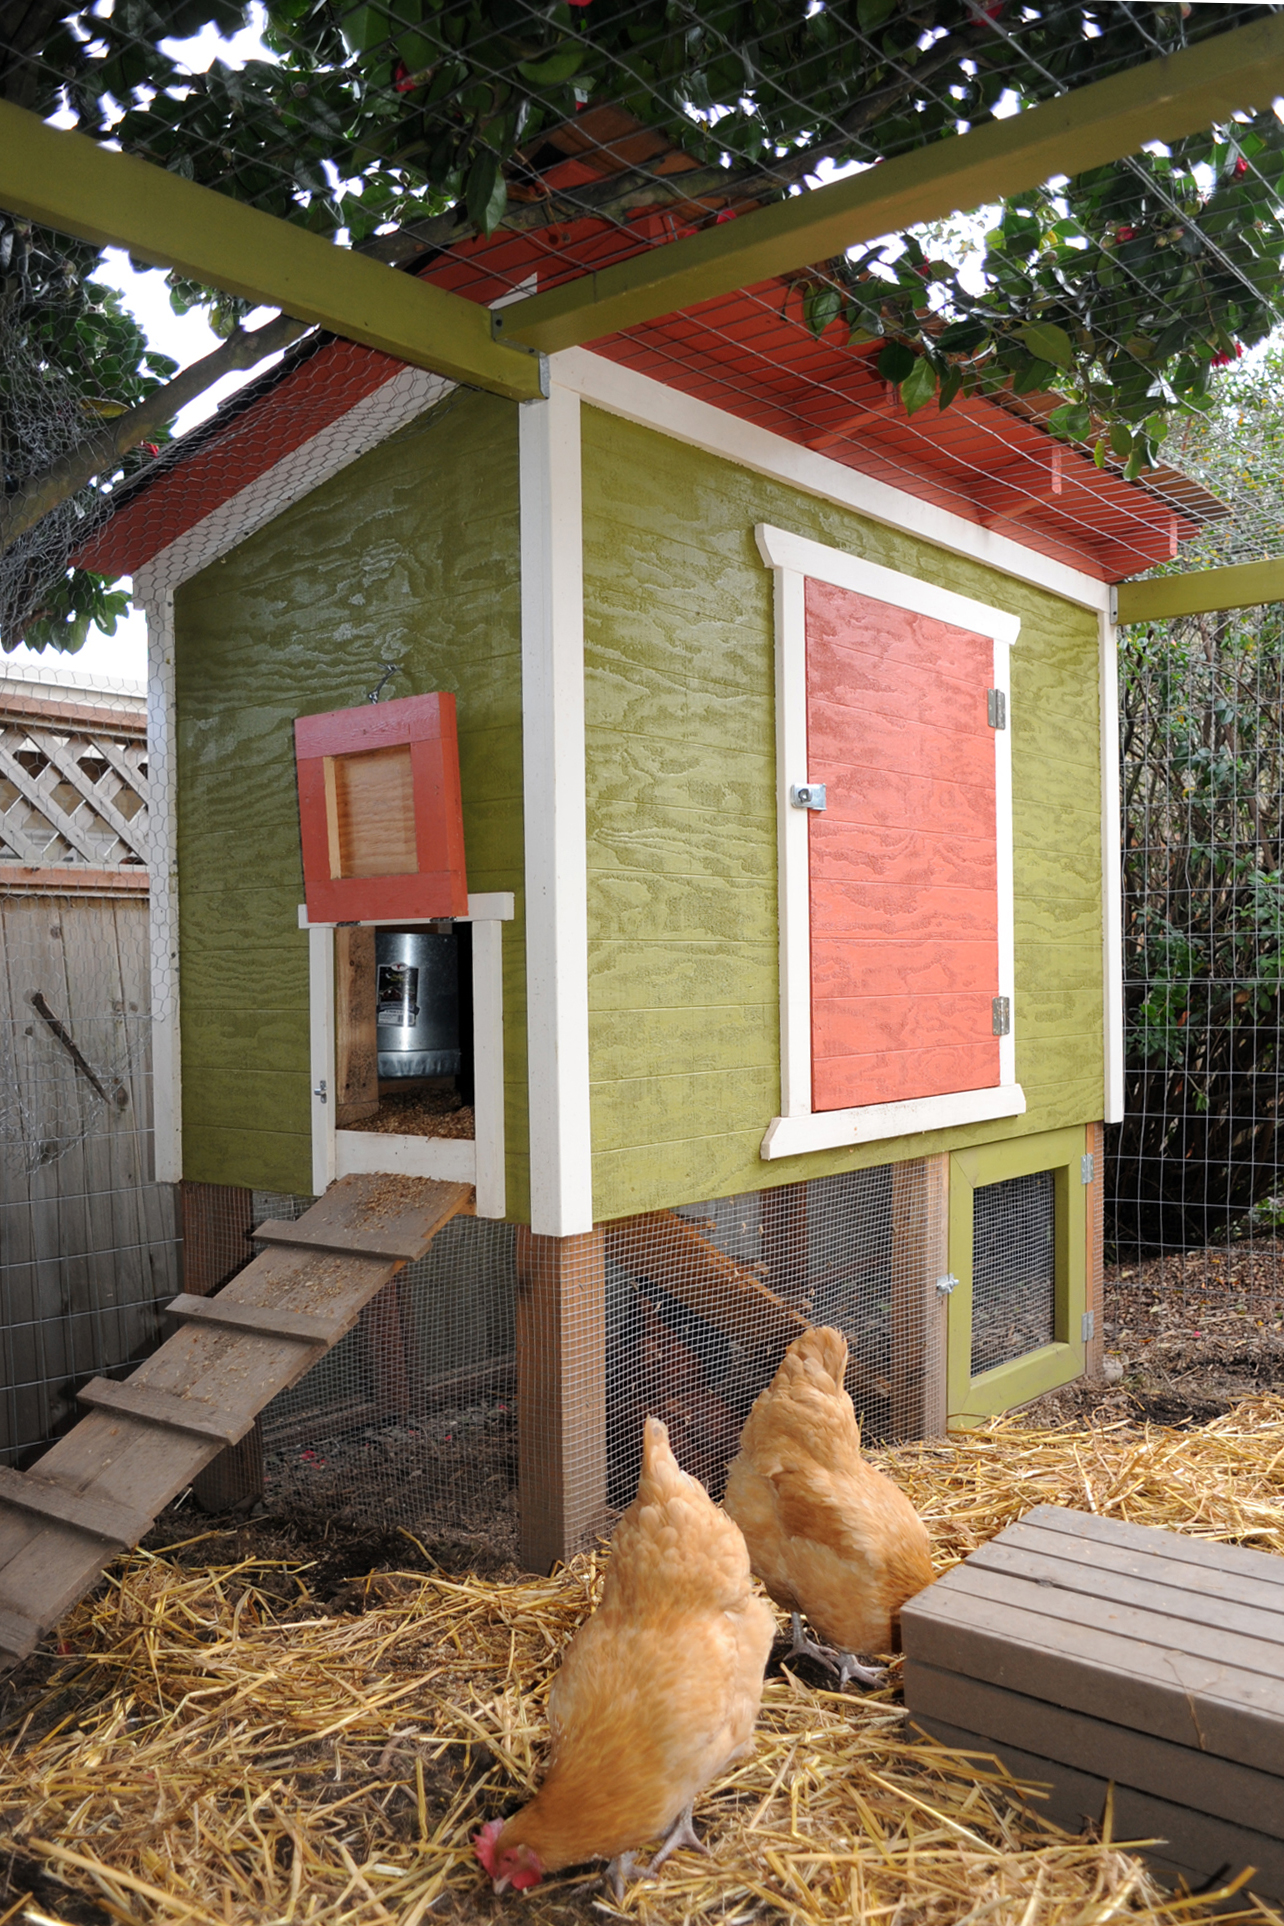 22 diy chicken coops you need in your backyard diy chicken coop plans - Chicken Coop Design Ideas